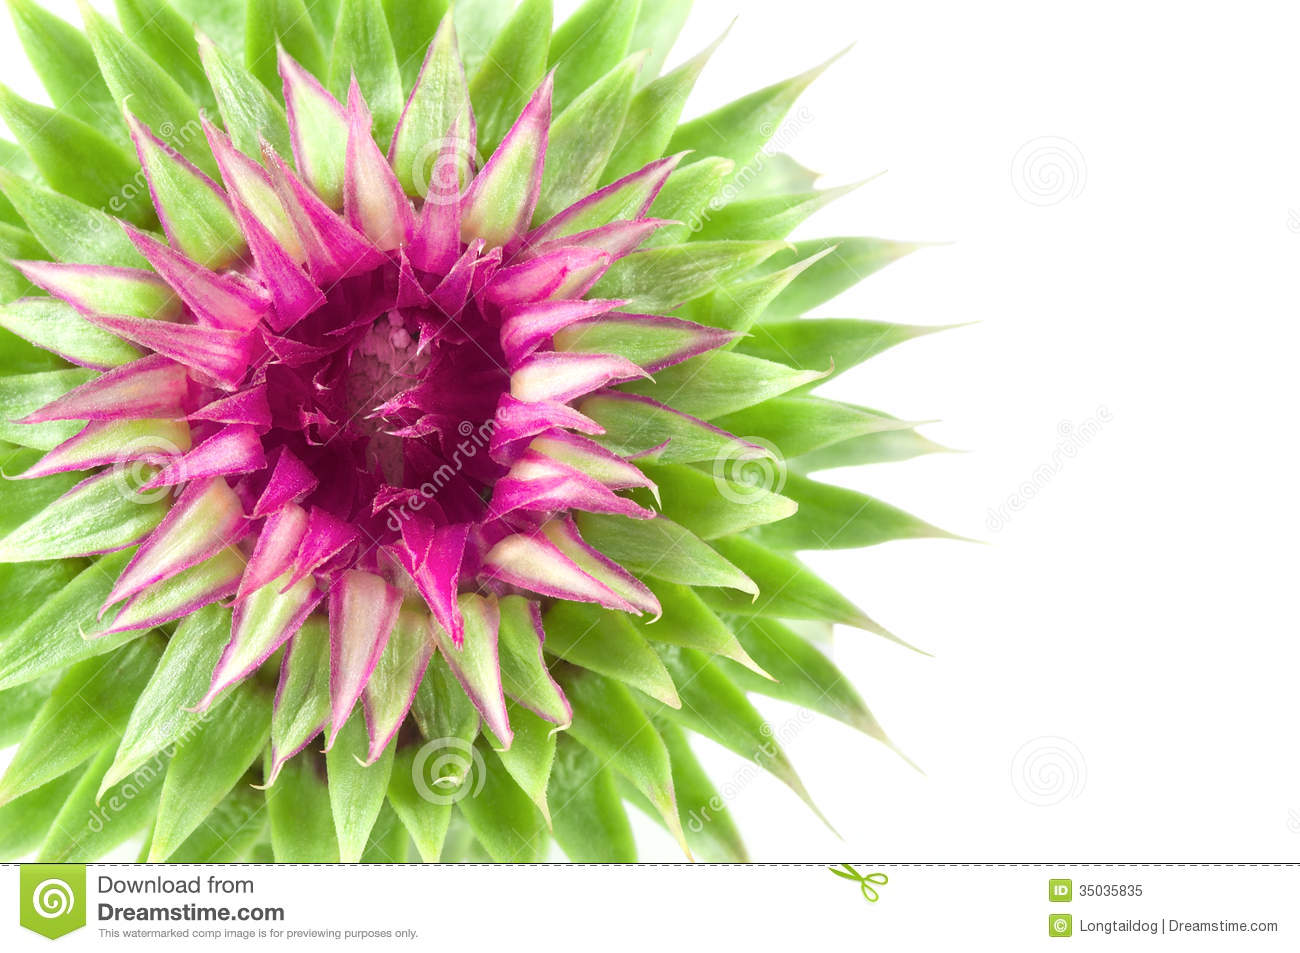 Green exotic flowers 8 cool wallpaper hdflowerwallpaper green exotic flowers free wallpaper mightylinksfo